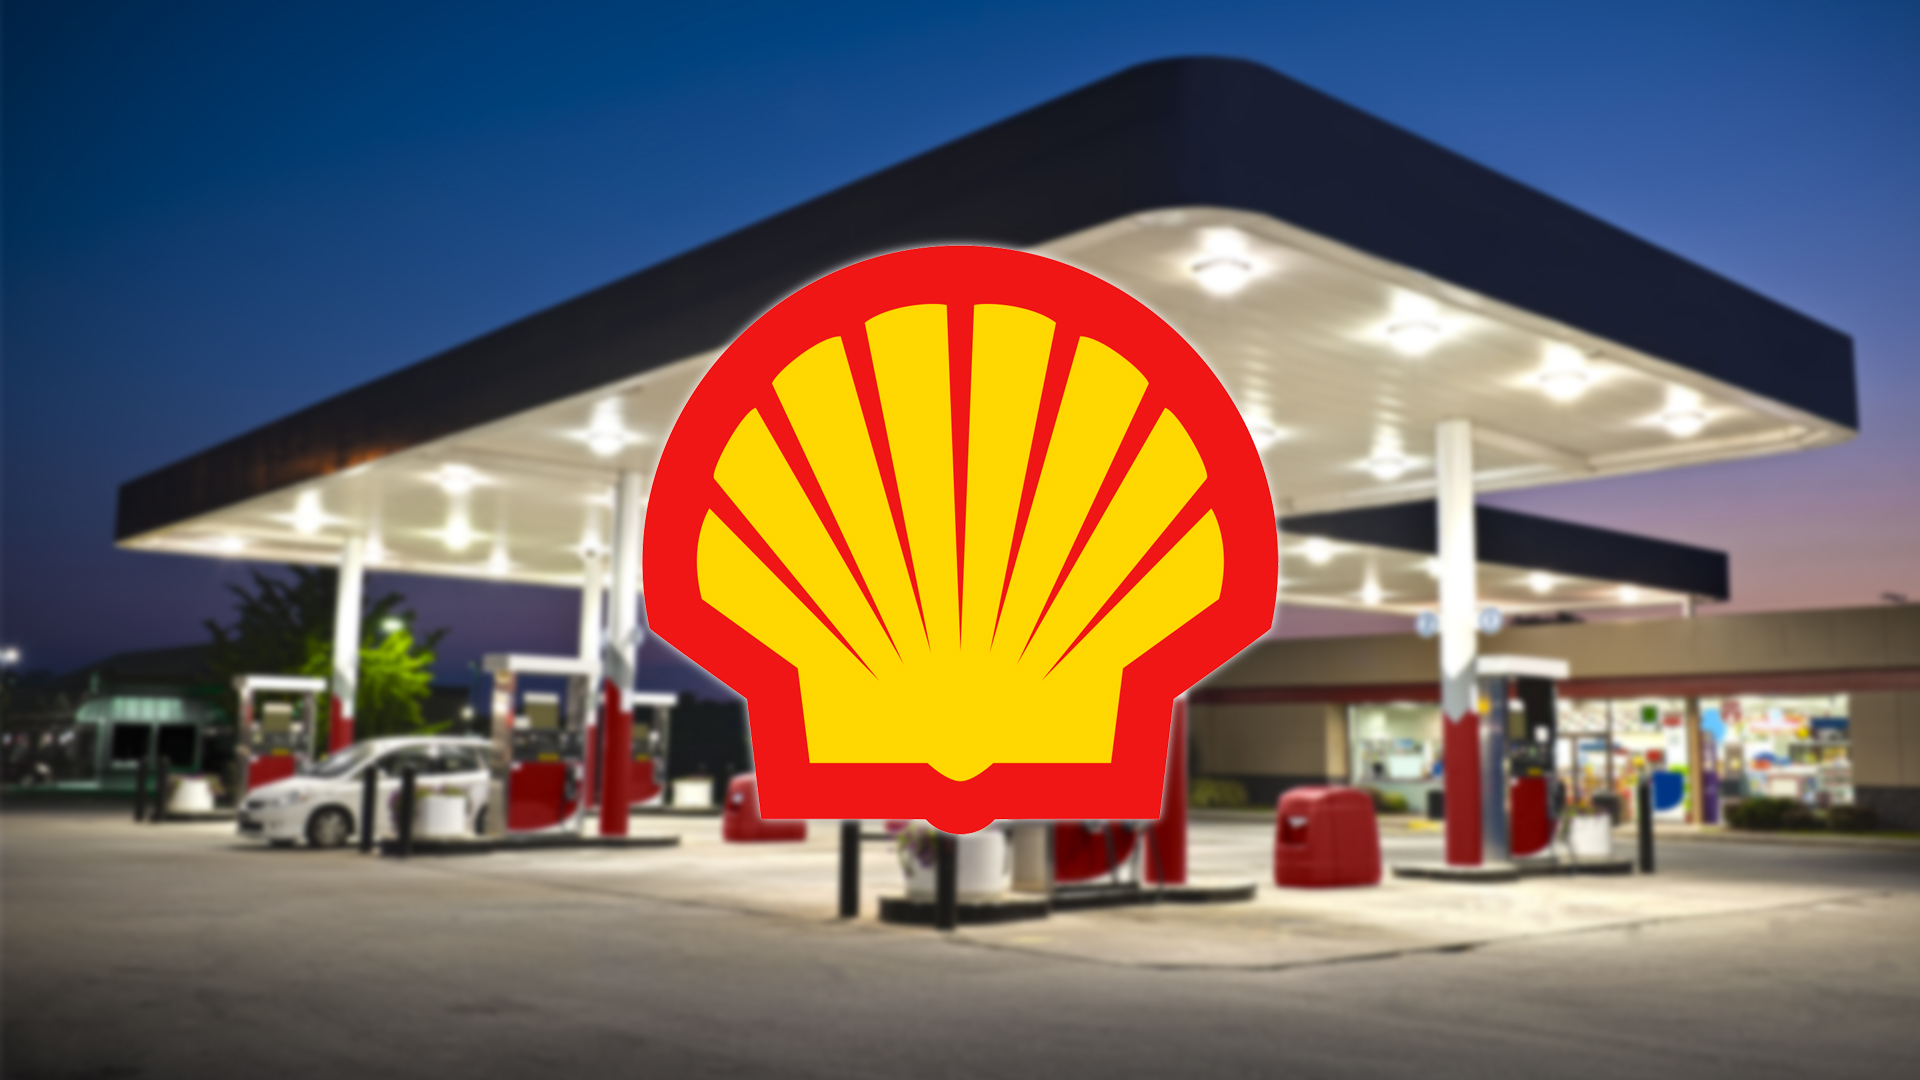 Shell Commission Agent Service Station in Queensland